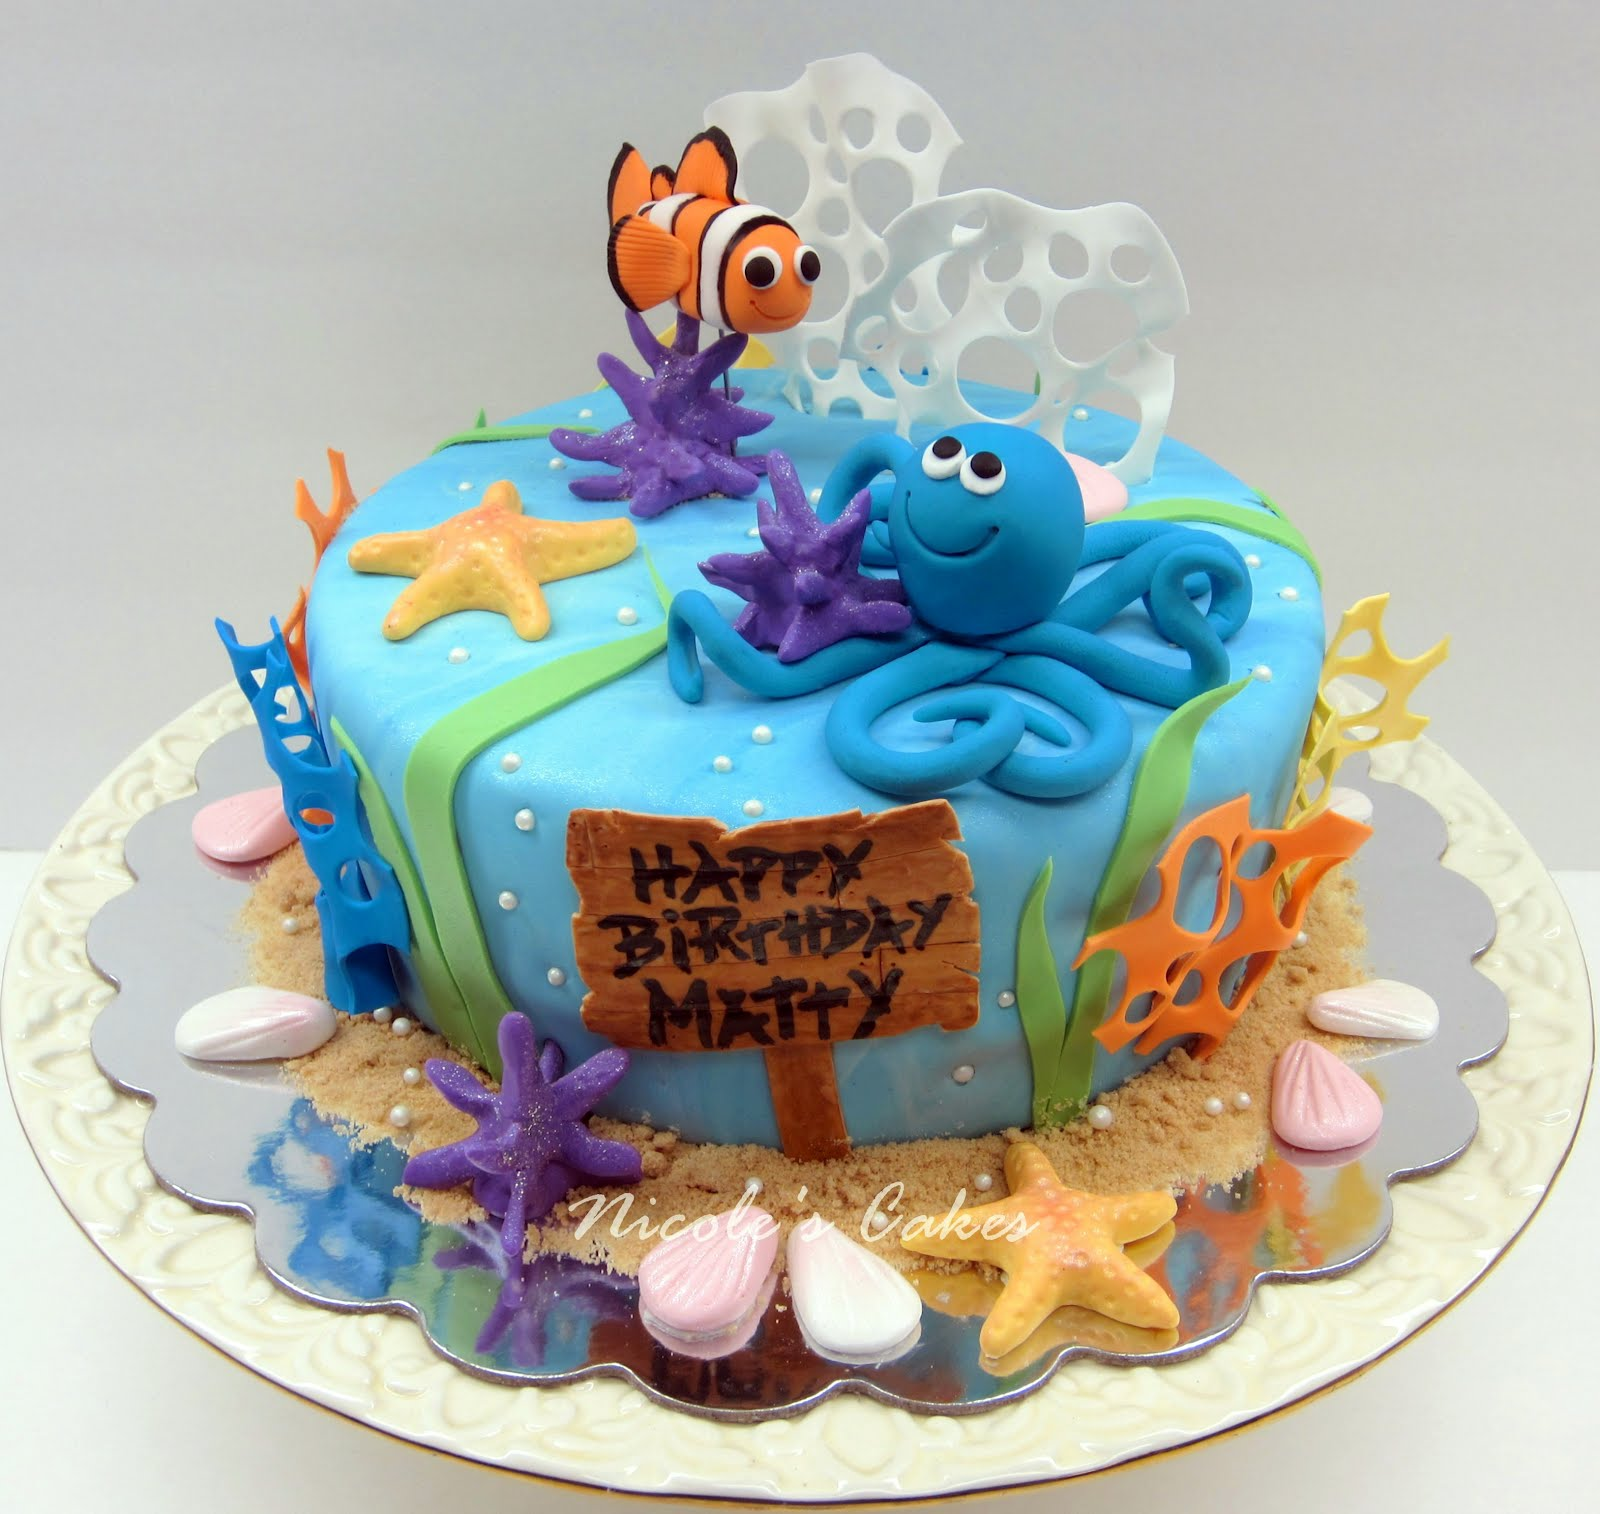 On Birthday Cakes Under The Sea Birthday Cake